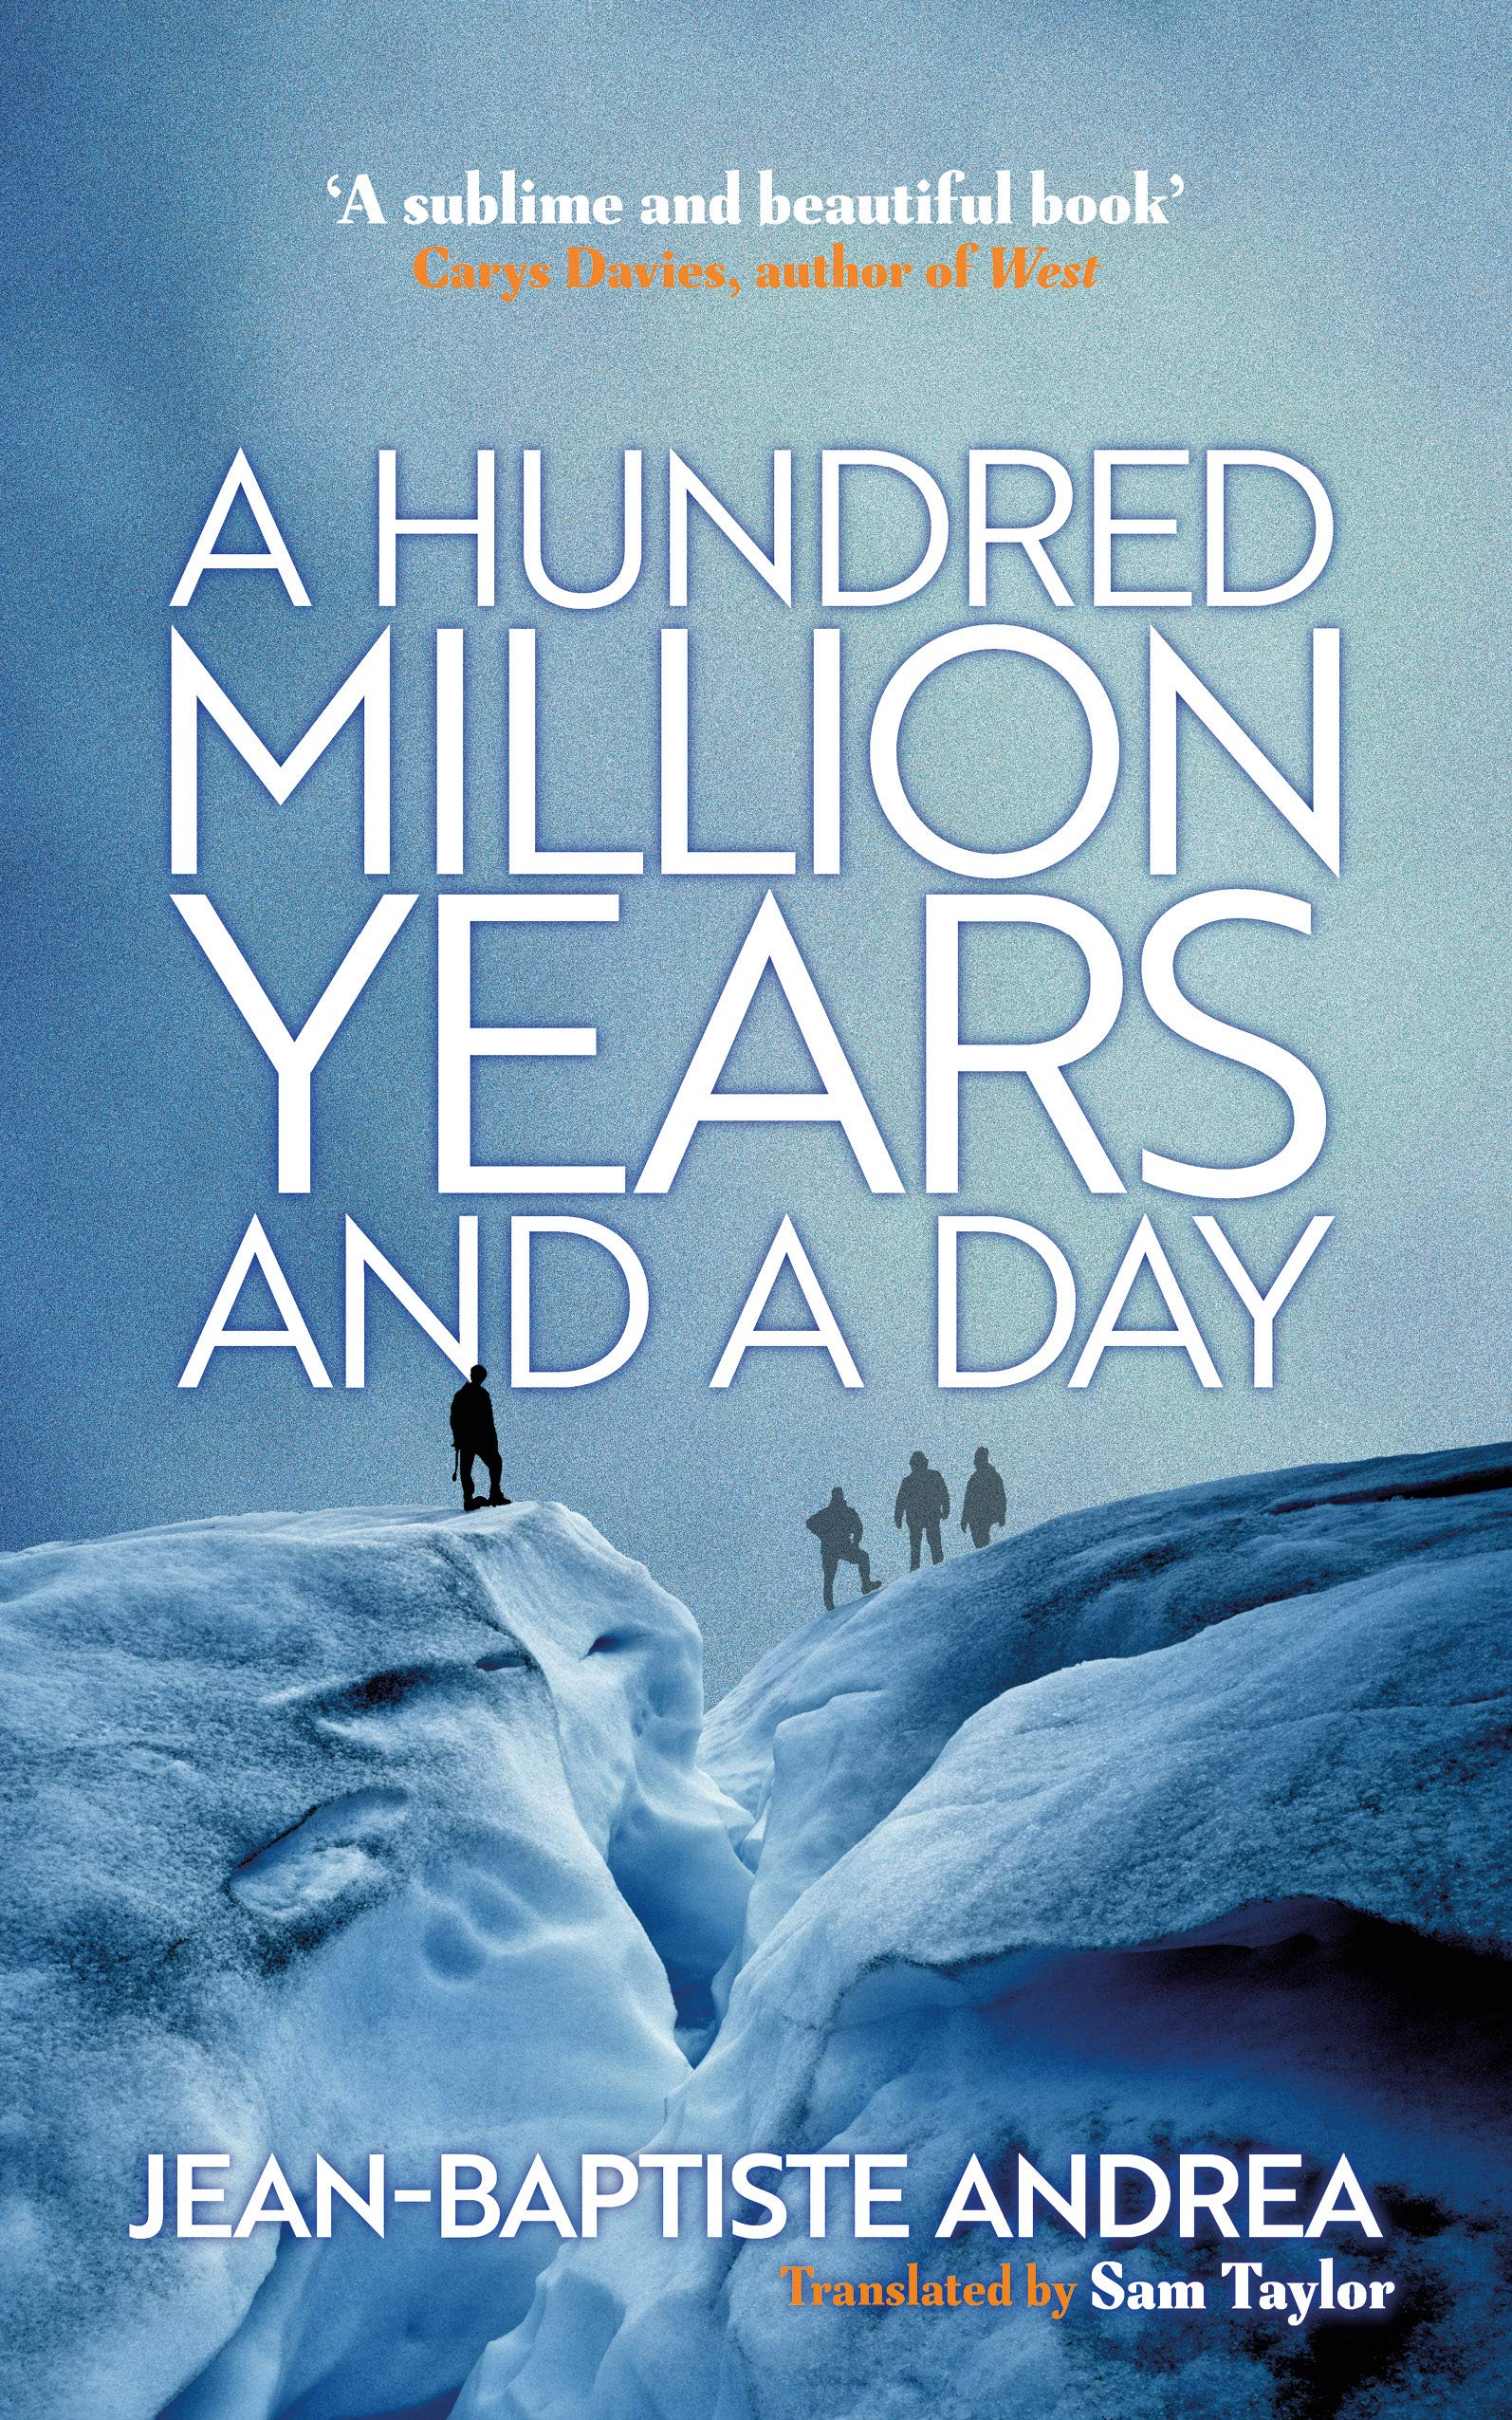 A Hundred Million Years and a Day by Jean-Baptiste Andrea